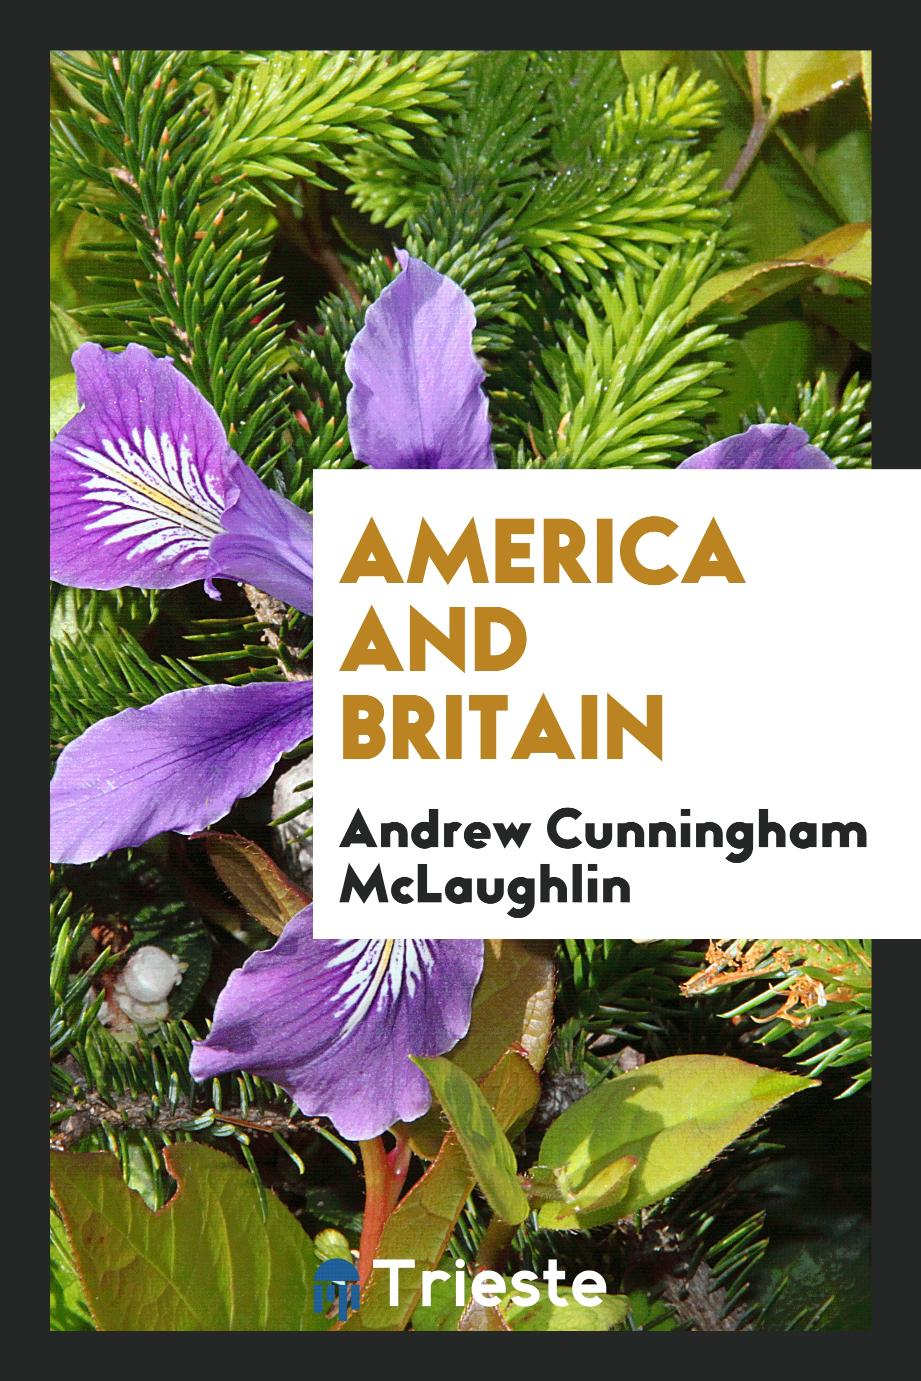 Andrew Cunningham McLaughlin - America and Britain